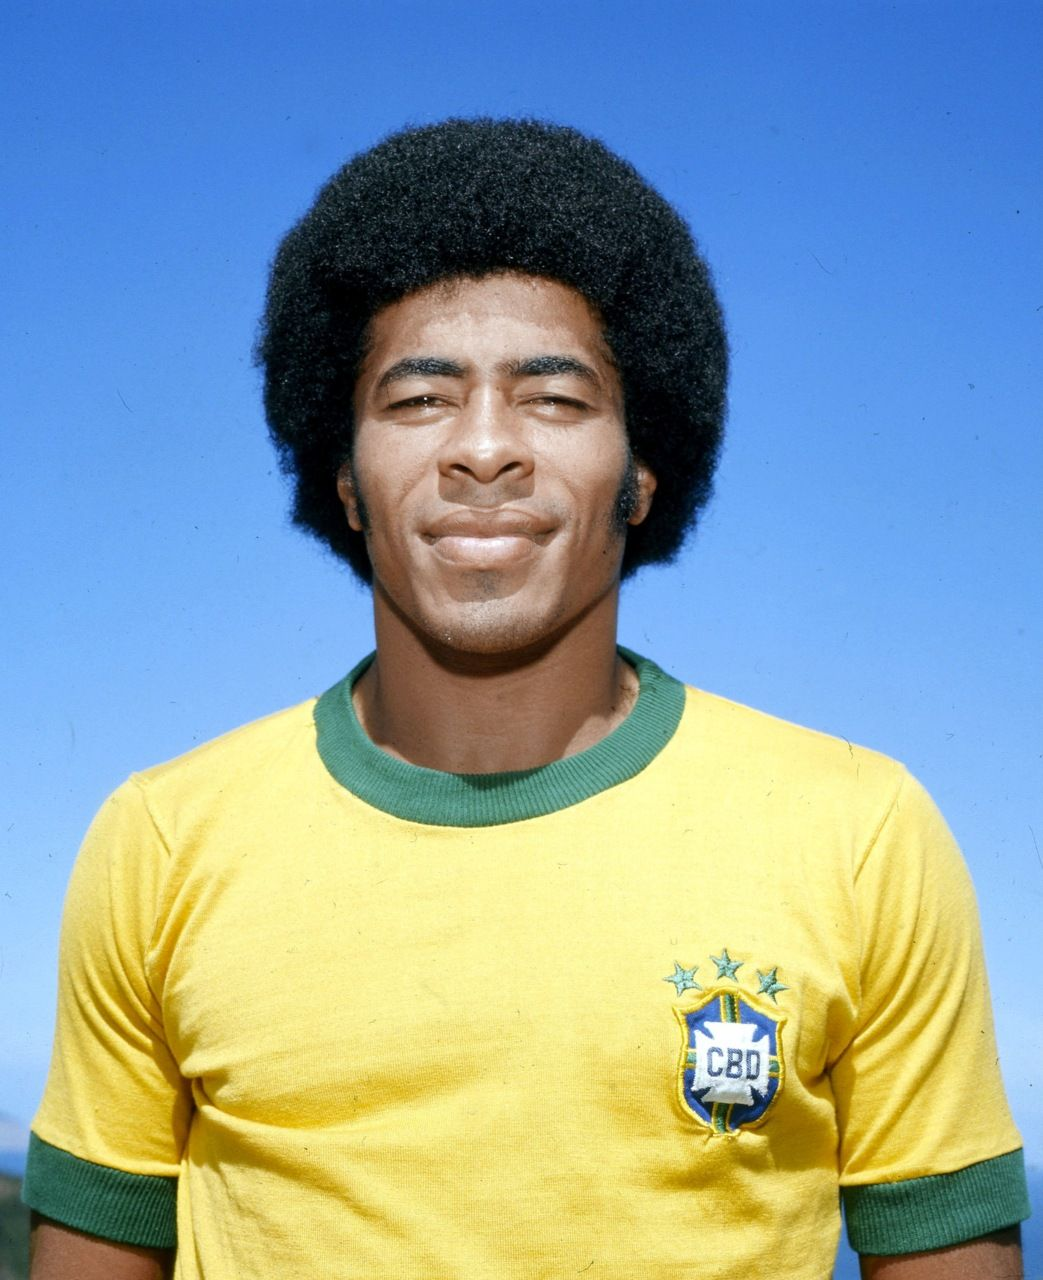 Pin by Kevin Verbeeck on People   Jairzinho, Brazil football team, Football  photography